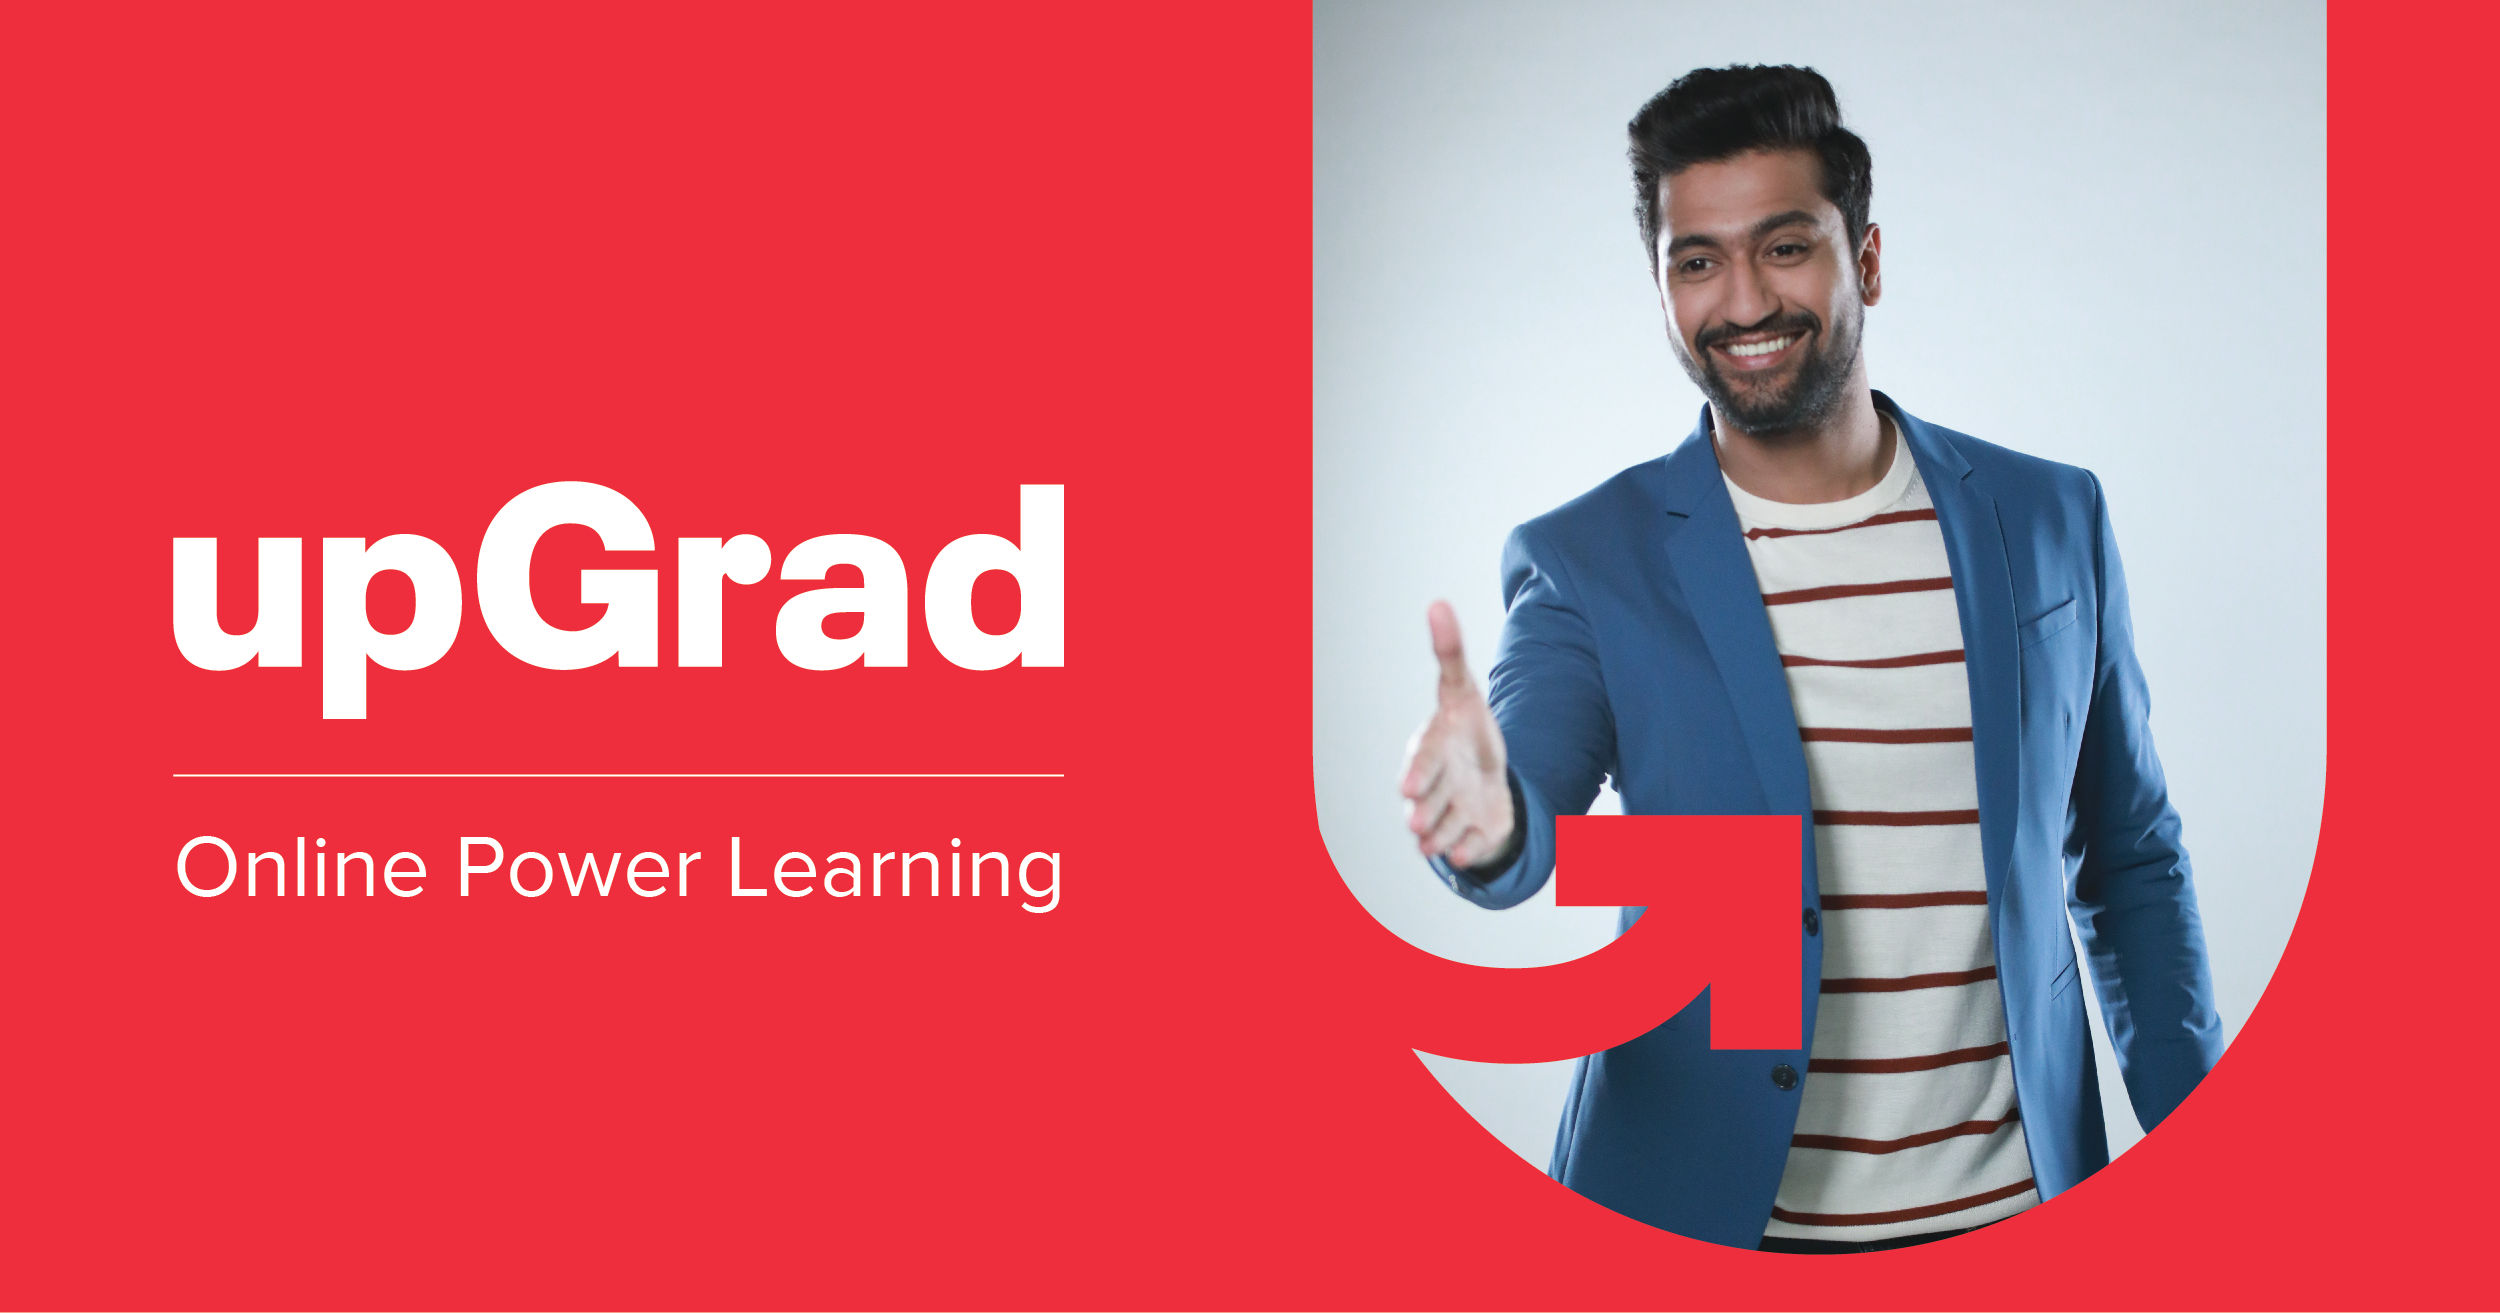 upGrad announces a week-long initiative to drive quality-education in rural  areas, starting this International Day of Education   Global Prime News